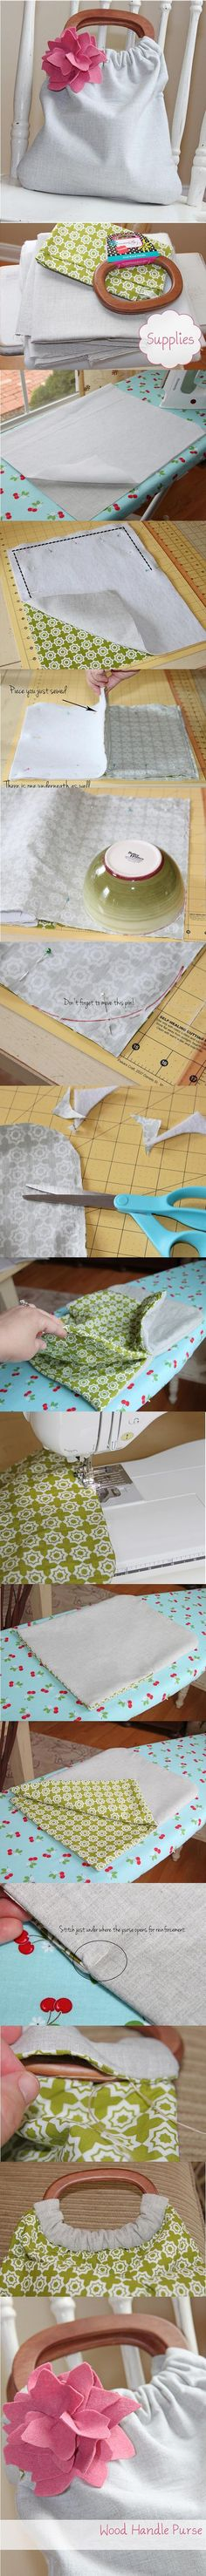 DIY: Bag Made ​​With Wooden Handles And Fabric. Easy, clear instructions with great pics to make this teen project an easy DIY purse that can be styled to a one of a kind fashion statement. Fabric Crafts, Sewing Crafts, Sewing Projects, Diy Crafts, Sewing Diy, Sewing Ideas, Diy Handbag, Diy Purse, Diy Bag Making